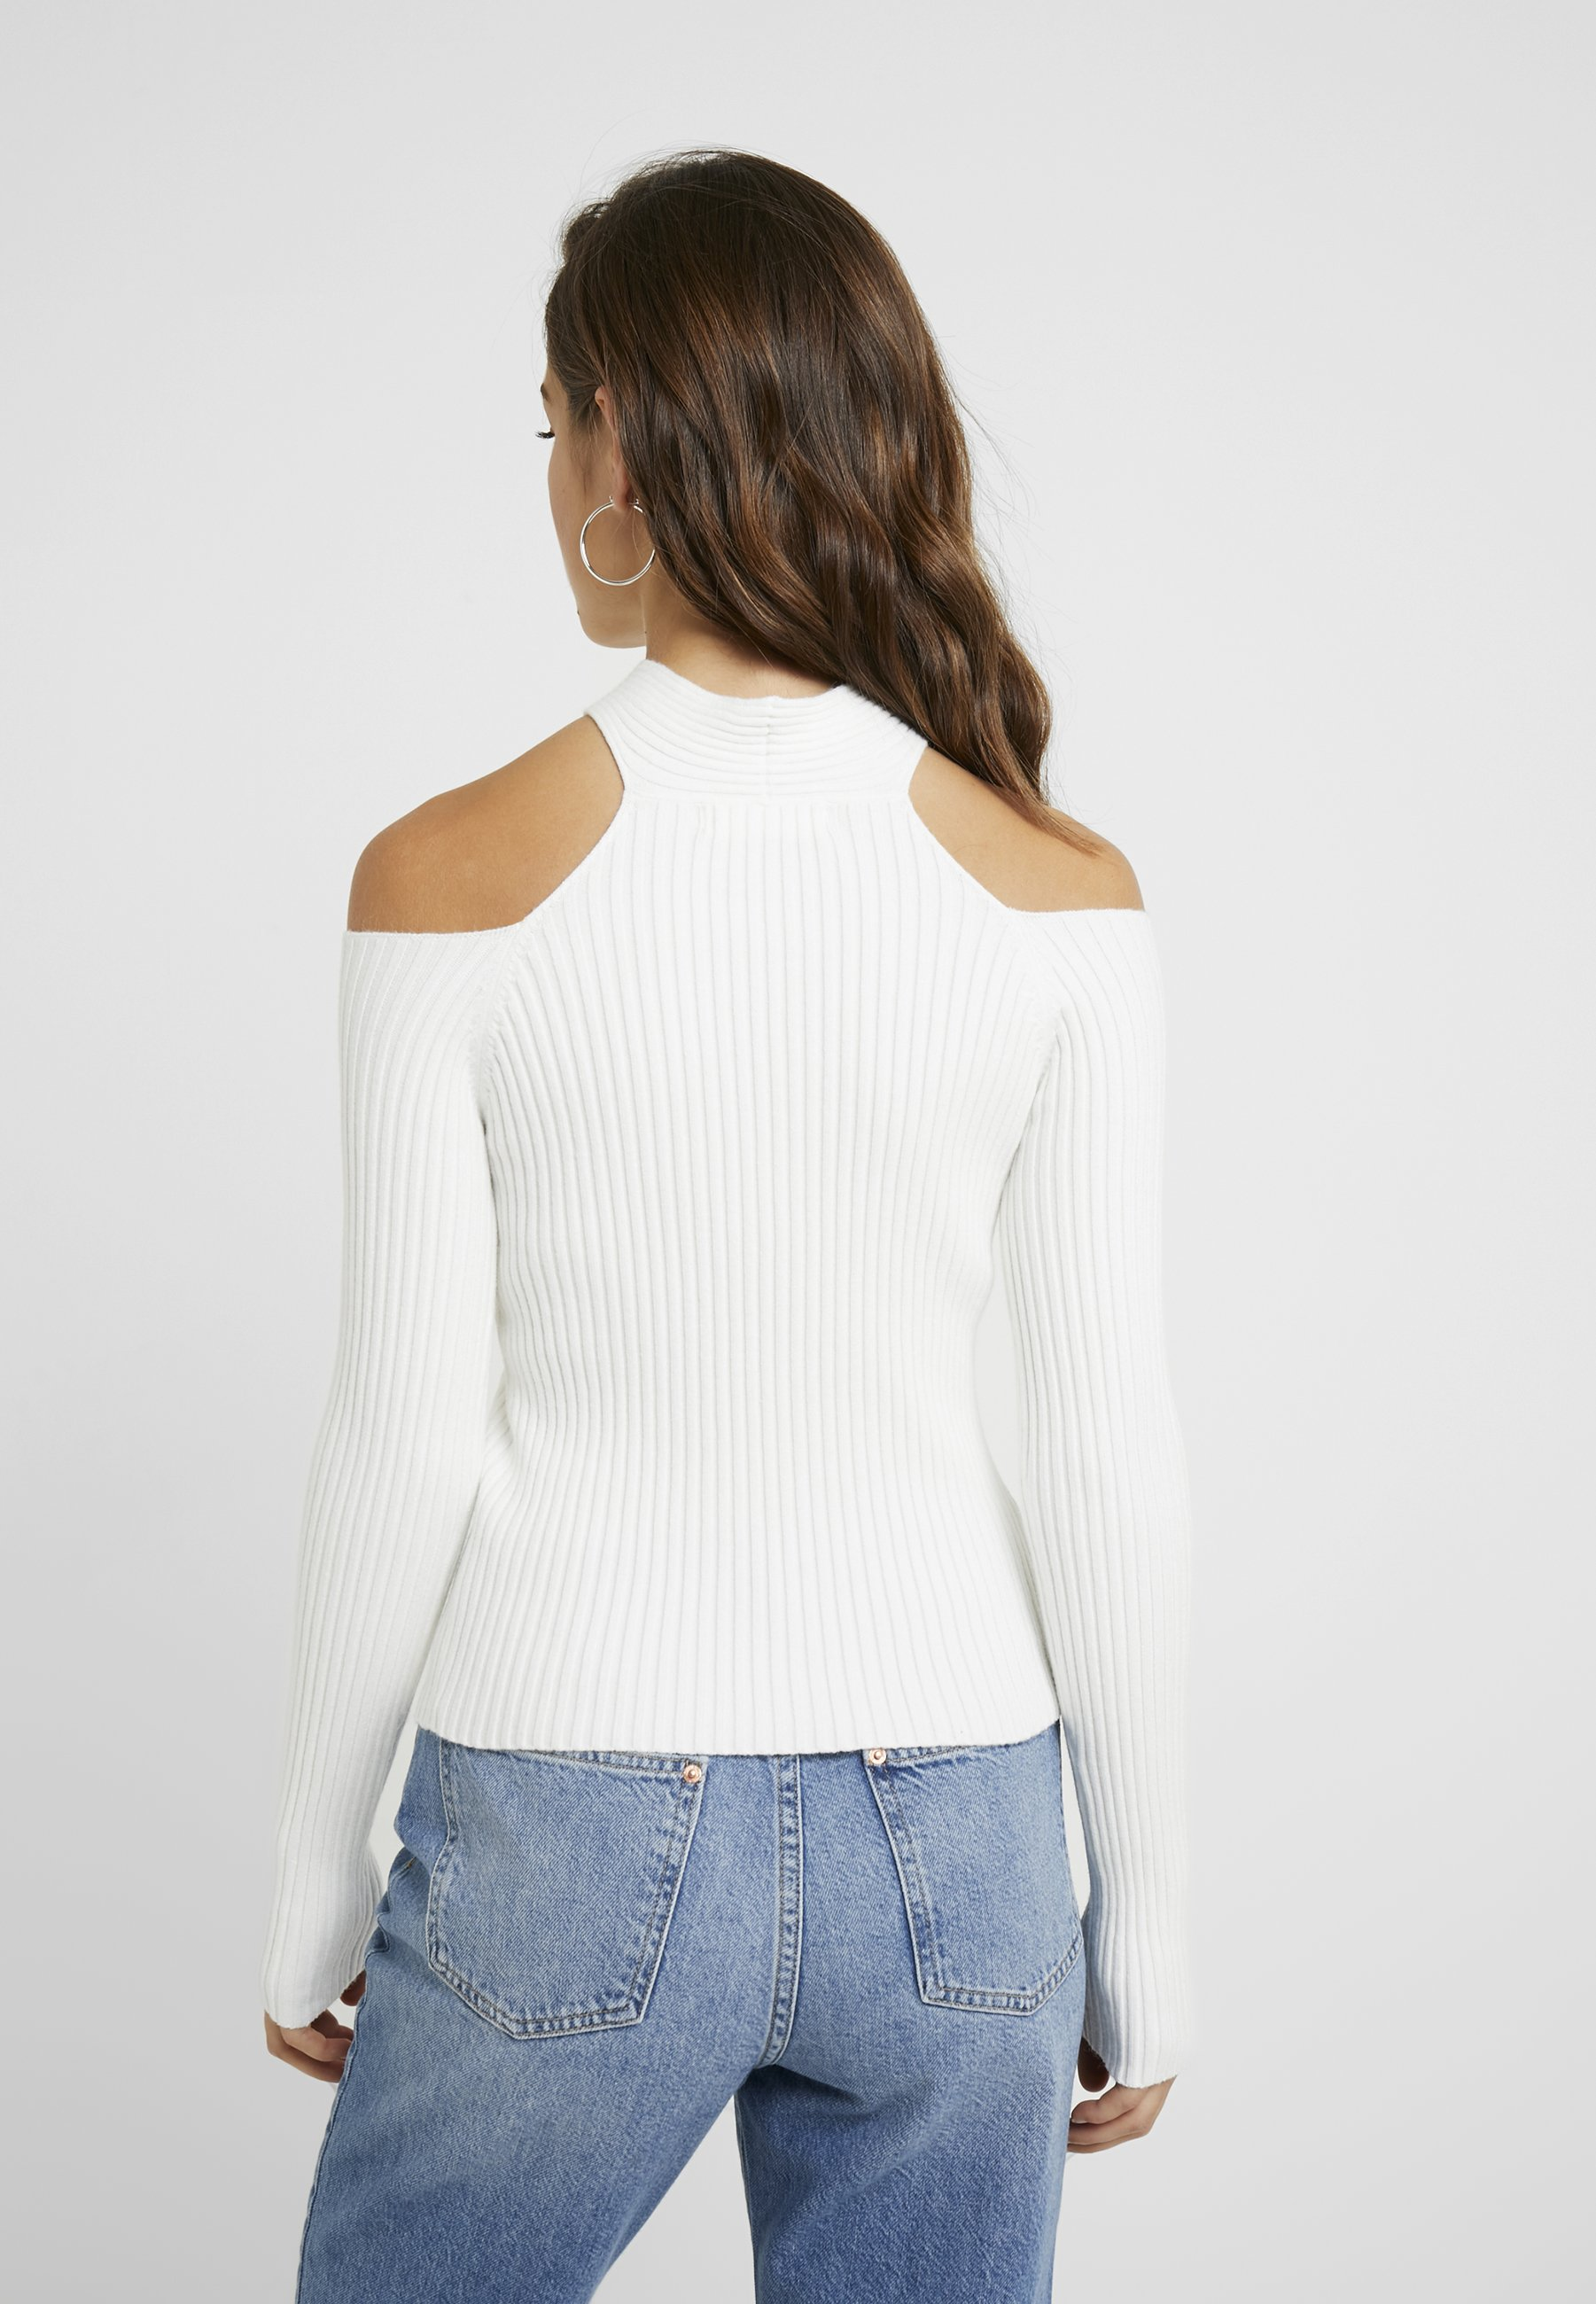 Sleeved Long Reckless State Jumper With White CrossPullover Petite 4thamp; Halterneck doeWxCrB